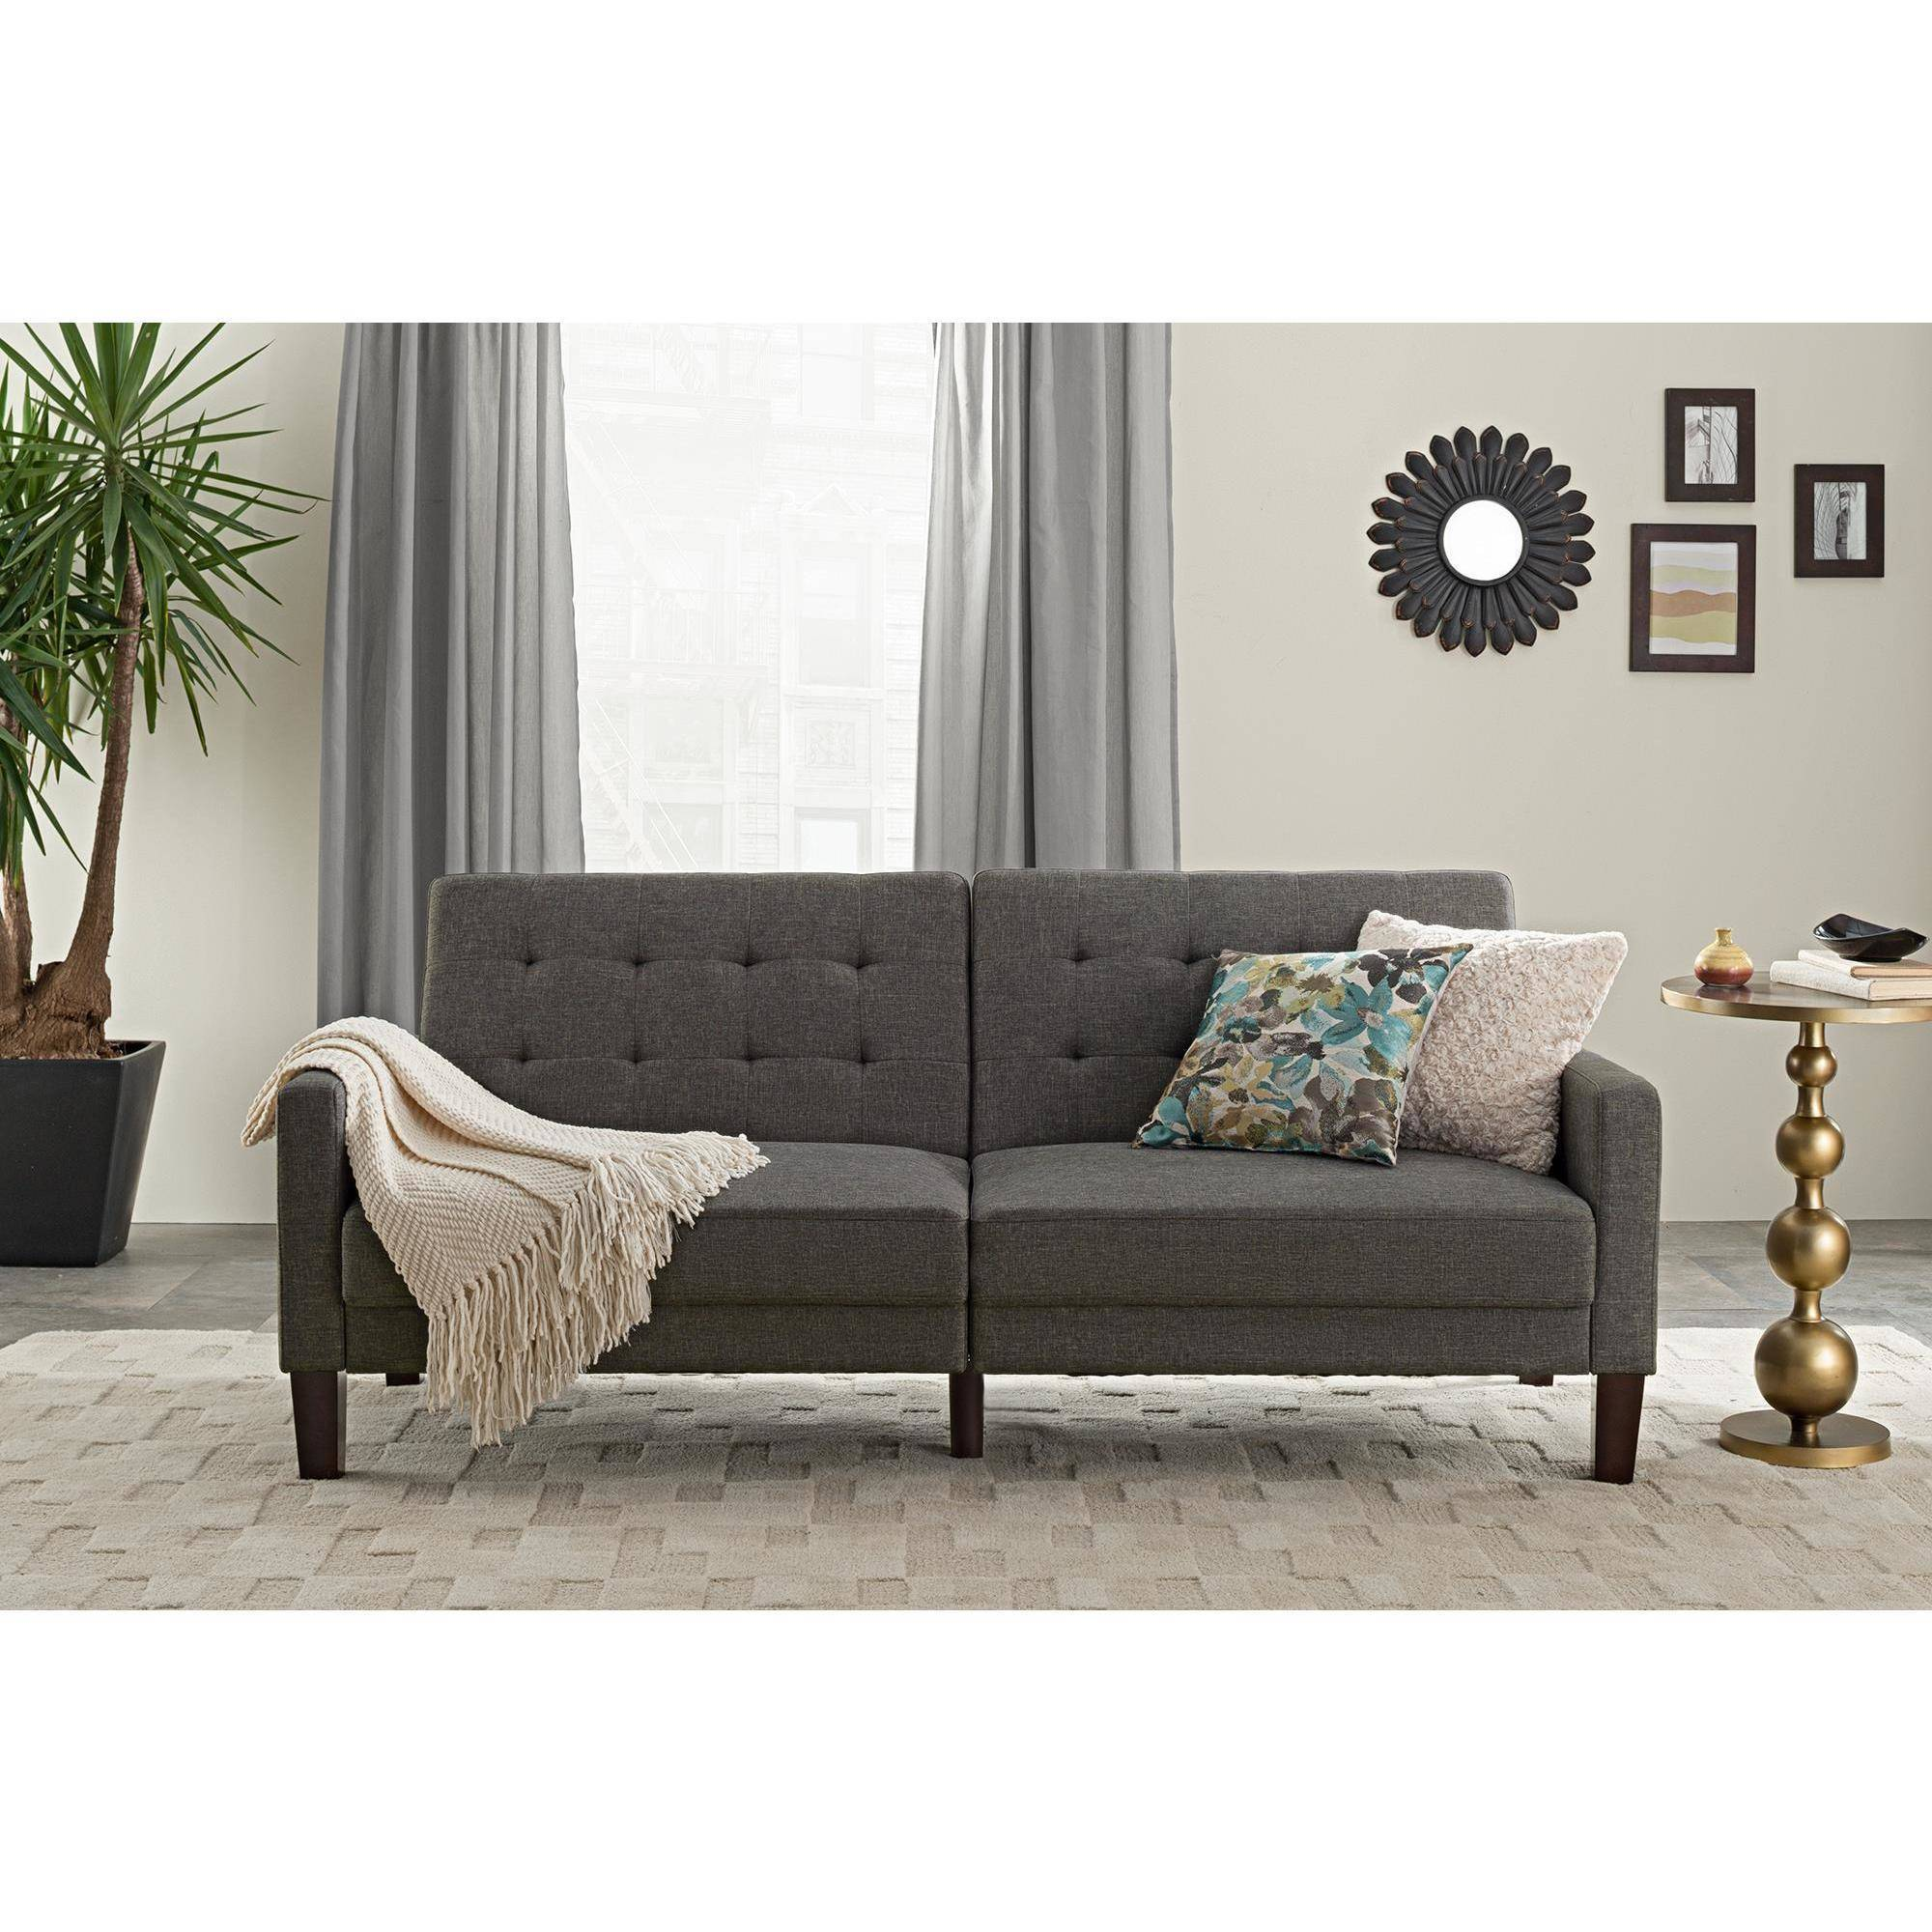 Better Homes and Gardens Porter Futon, Multiple Colors